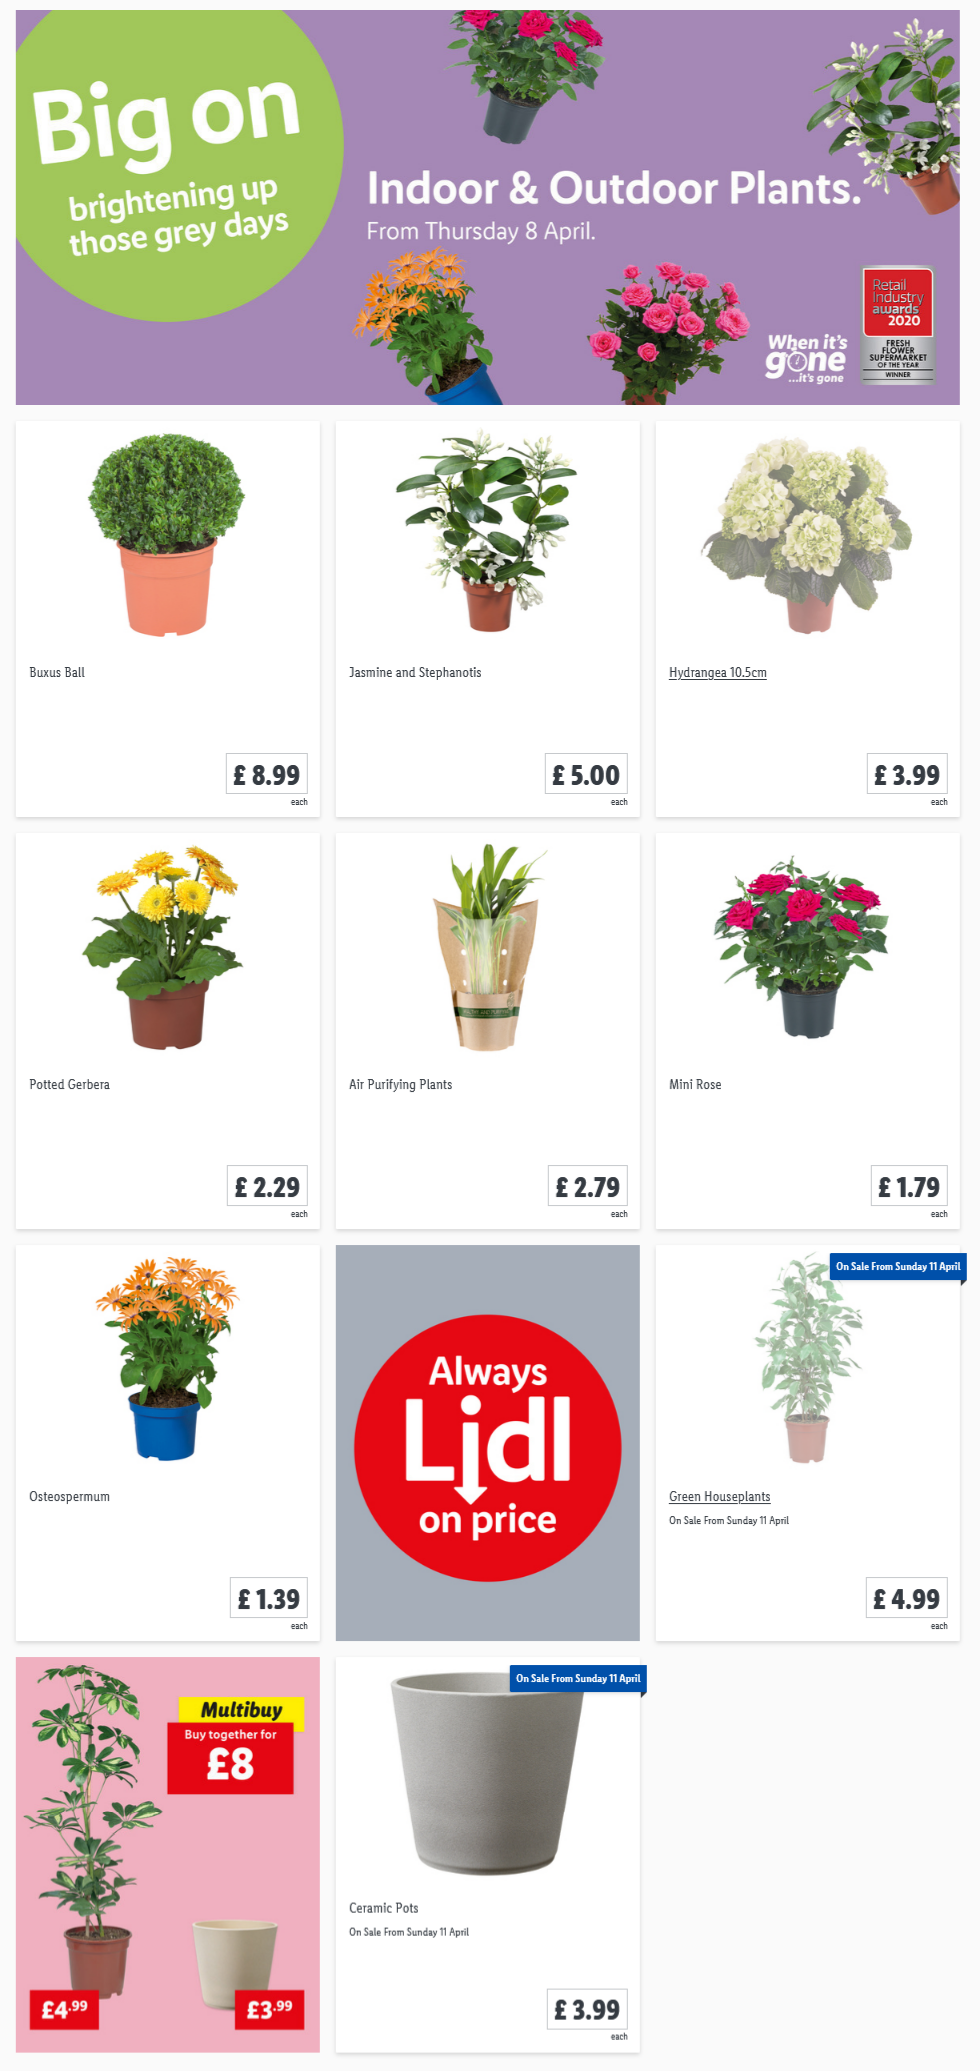 LIDL Offers this Thursday From 8th April 2021 LIDL Indoor & Outdoor Plants